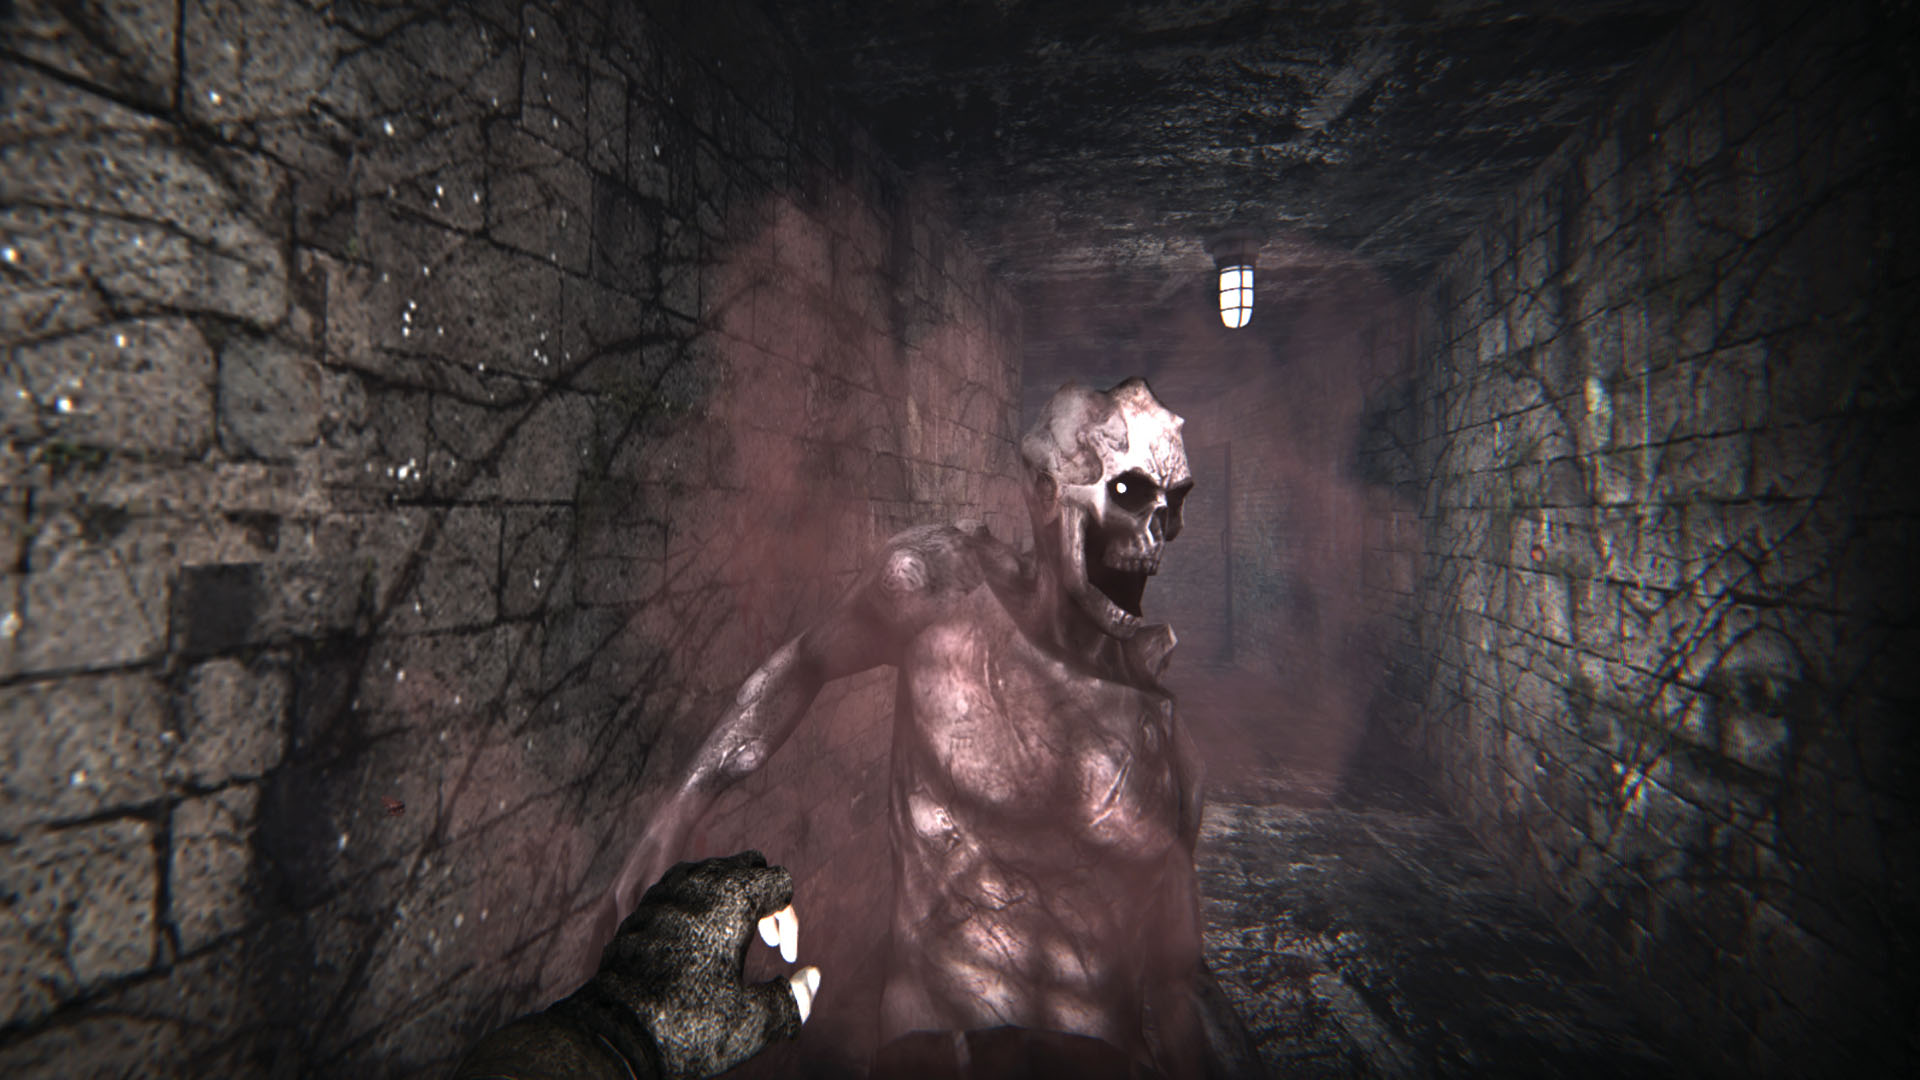 Play Total Chaos, a mod that makes Doom 2 unrecognisable